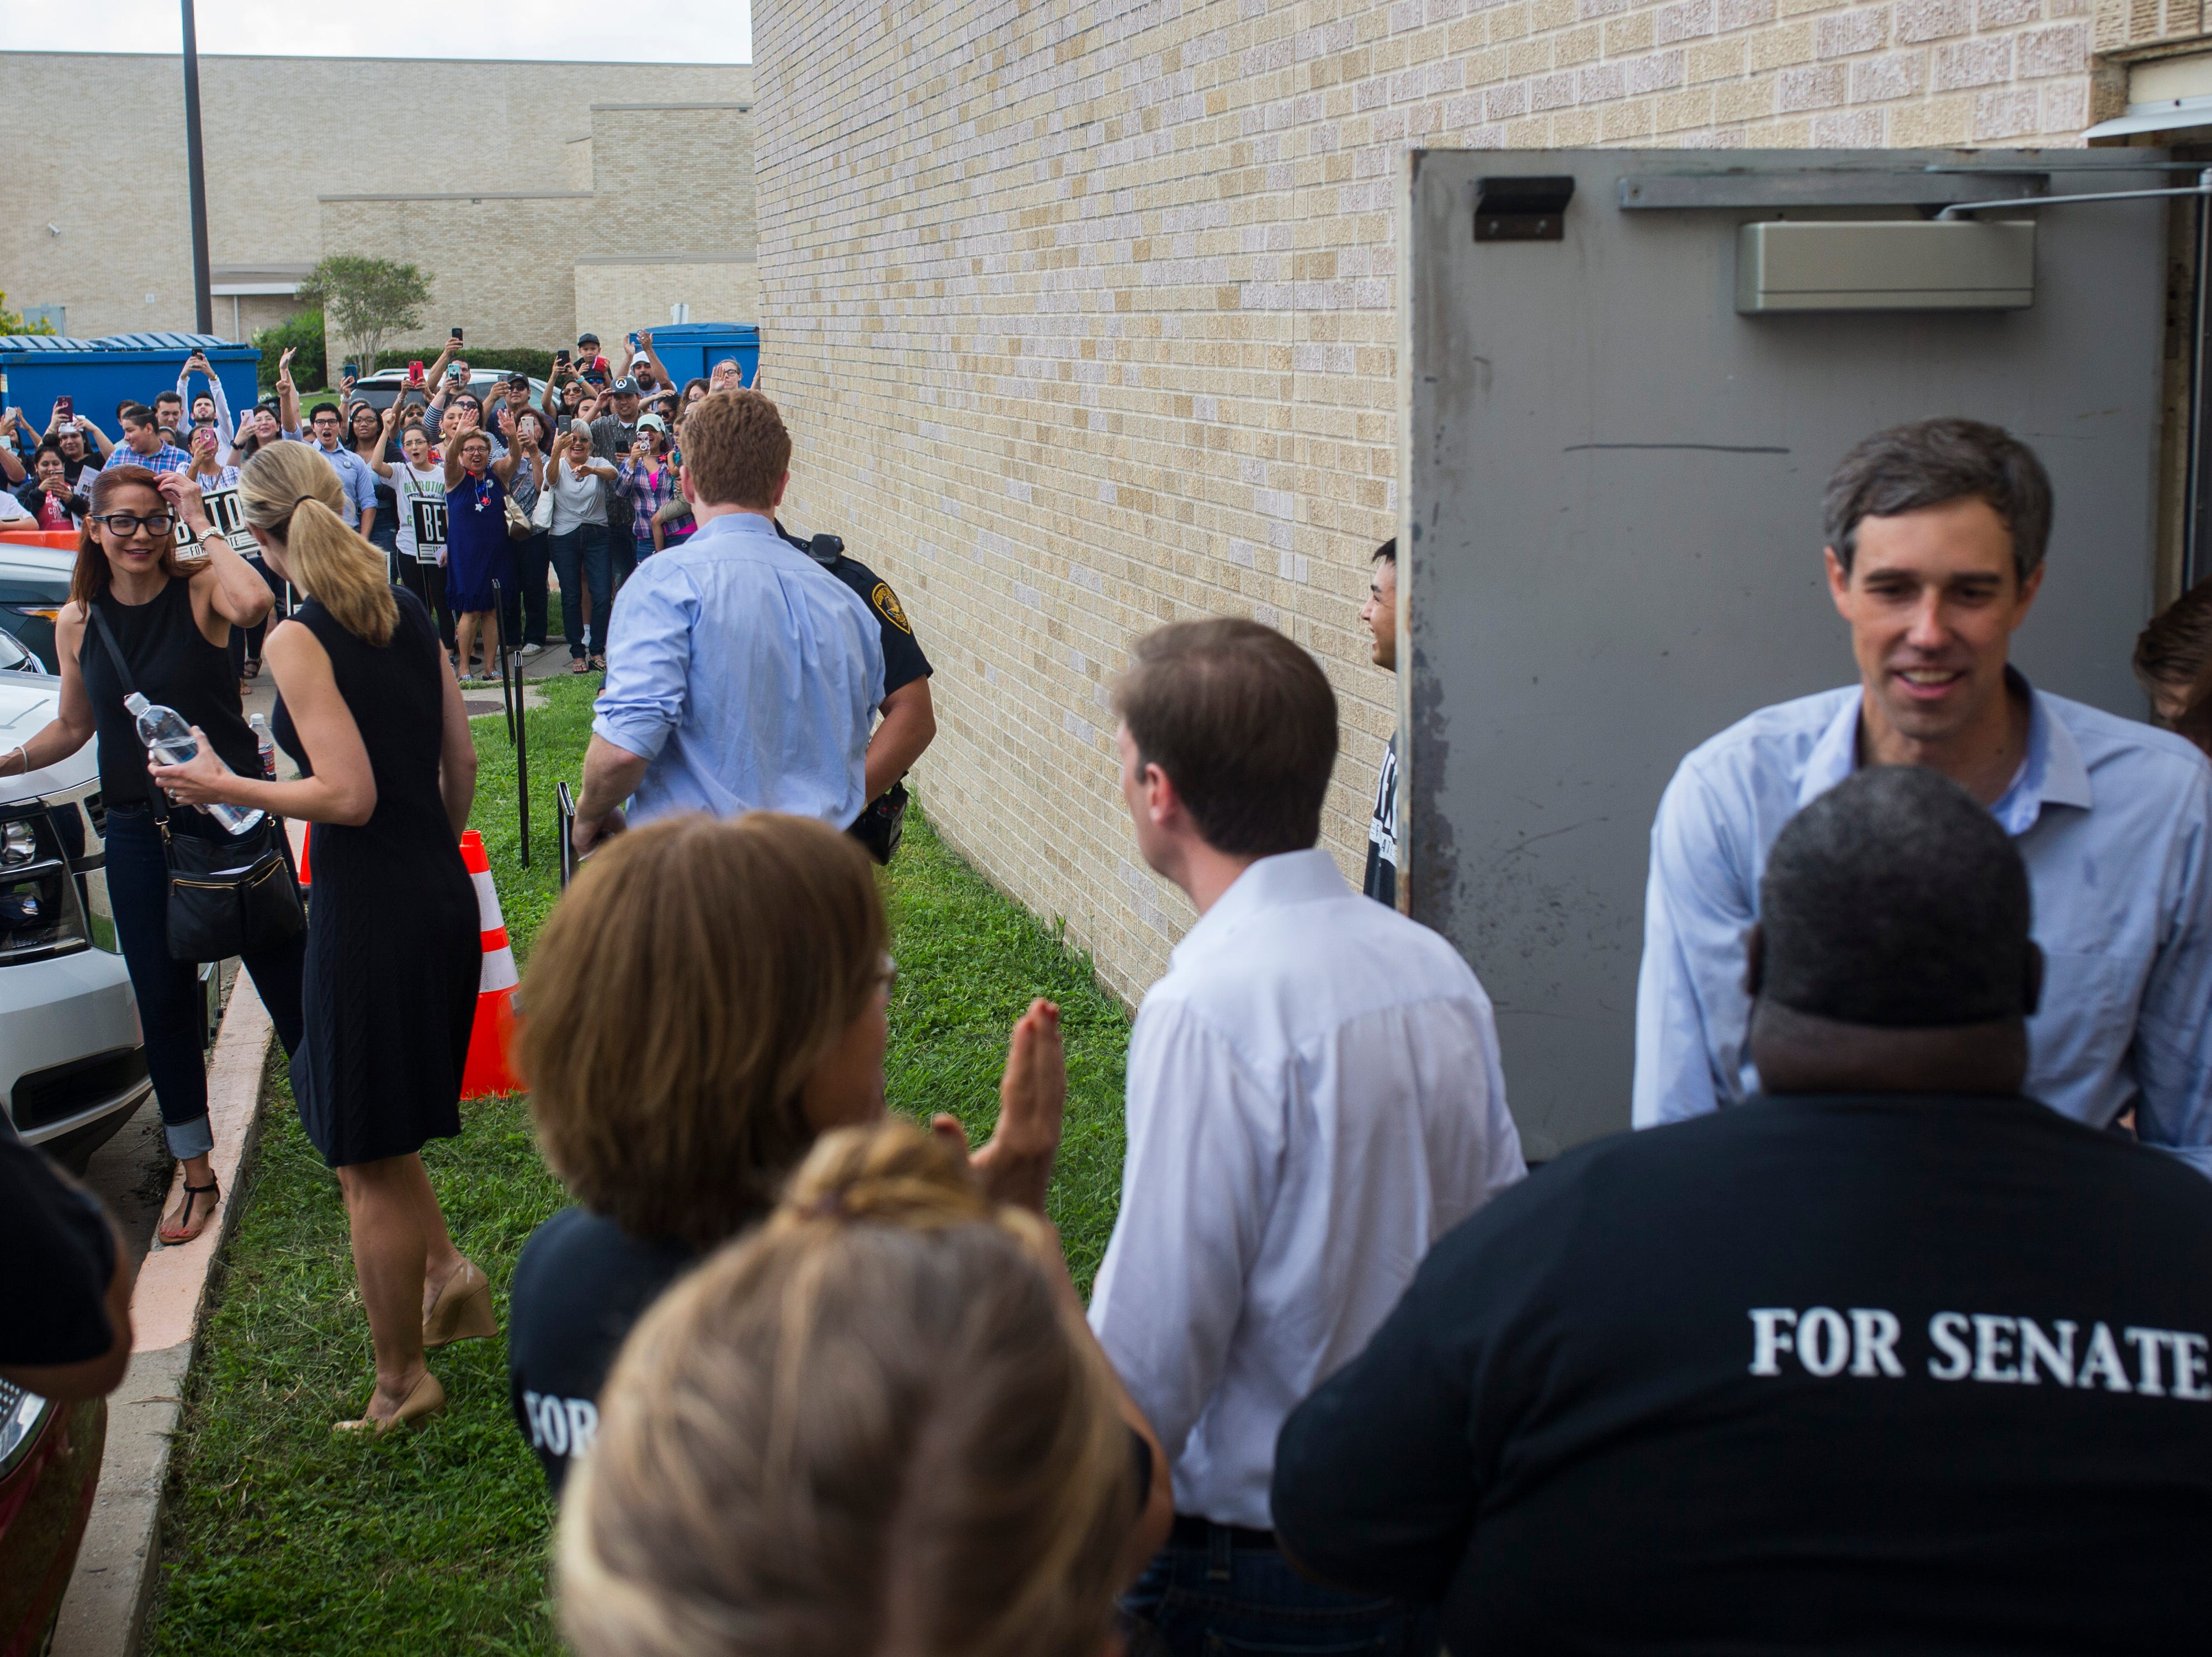 Beto O'Rourke supporters wave to him following a campaign event Saturday, Oct. 13, 2018 at Del Mar College in Corpus Christi.